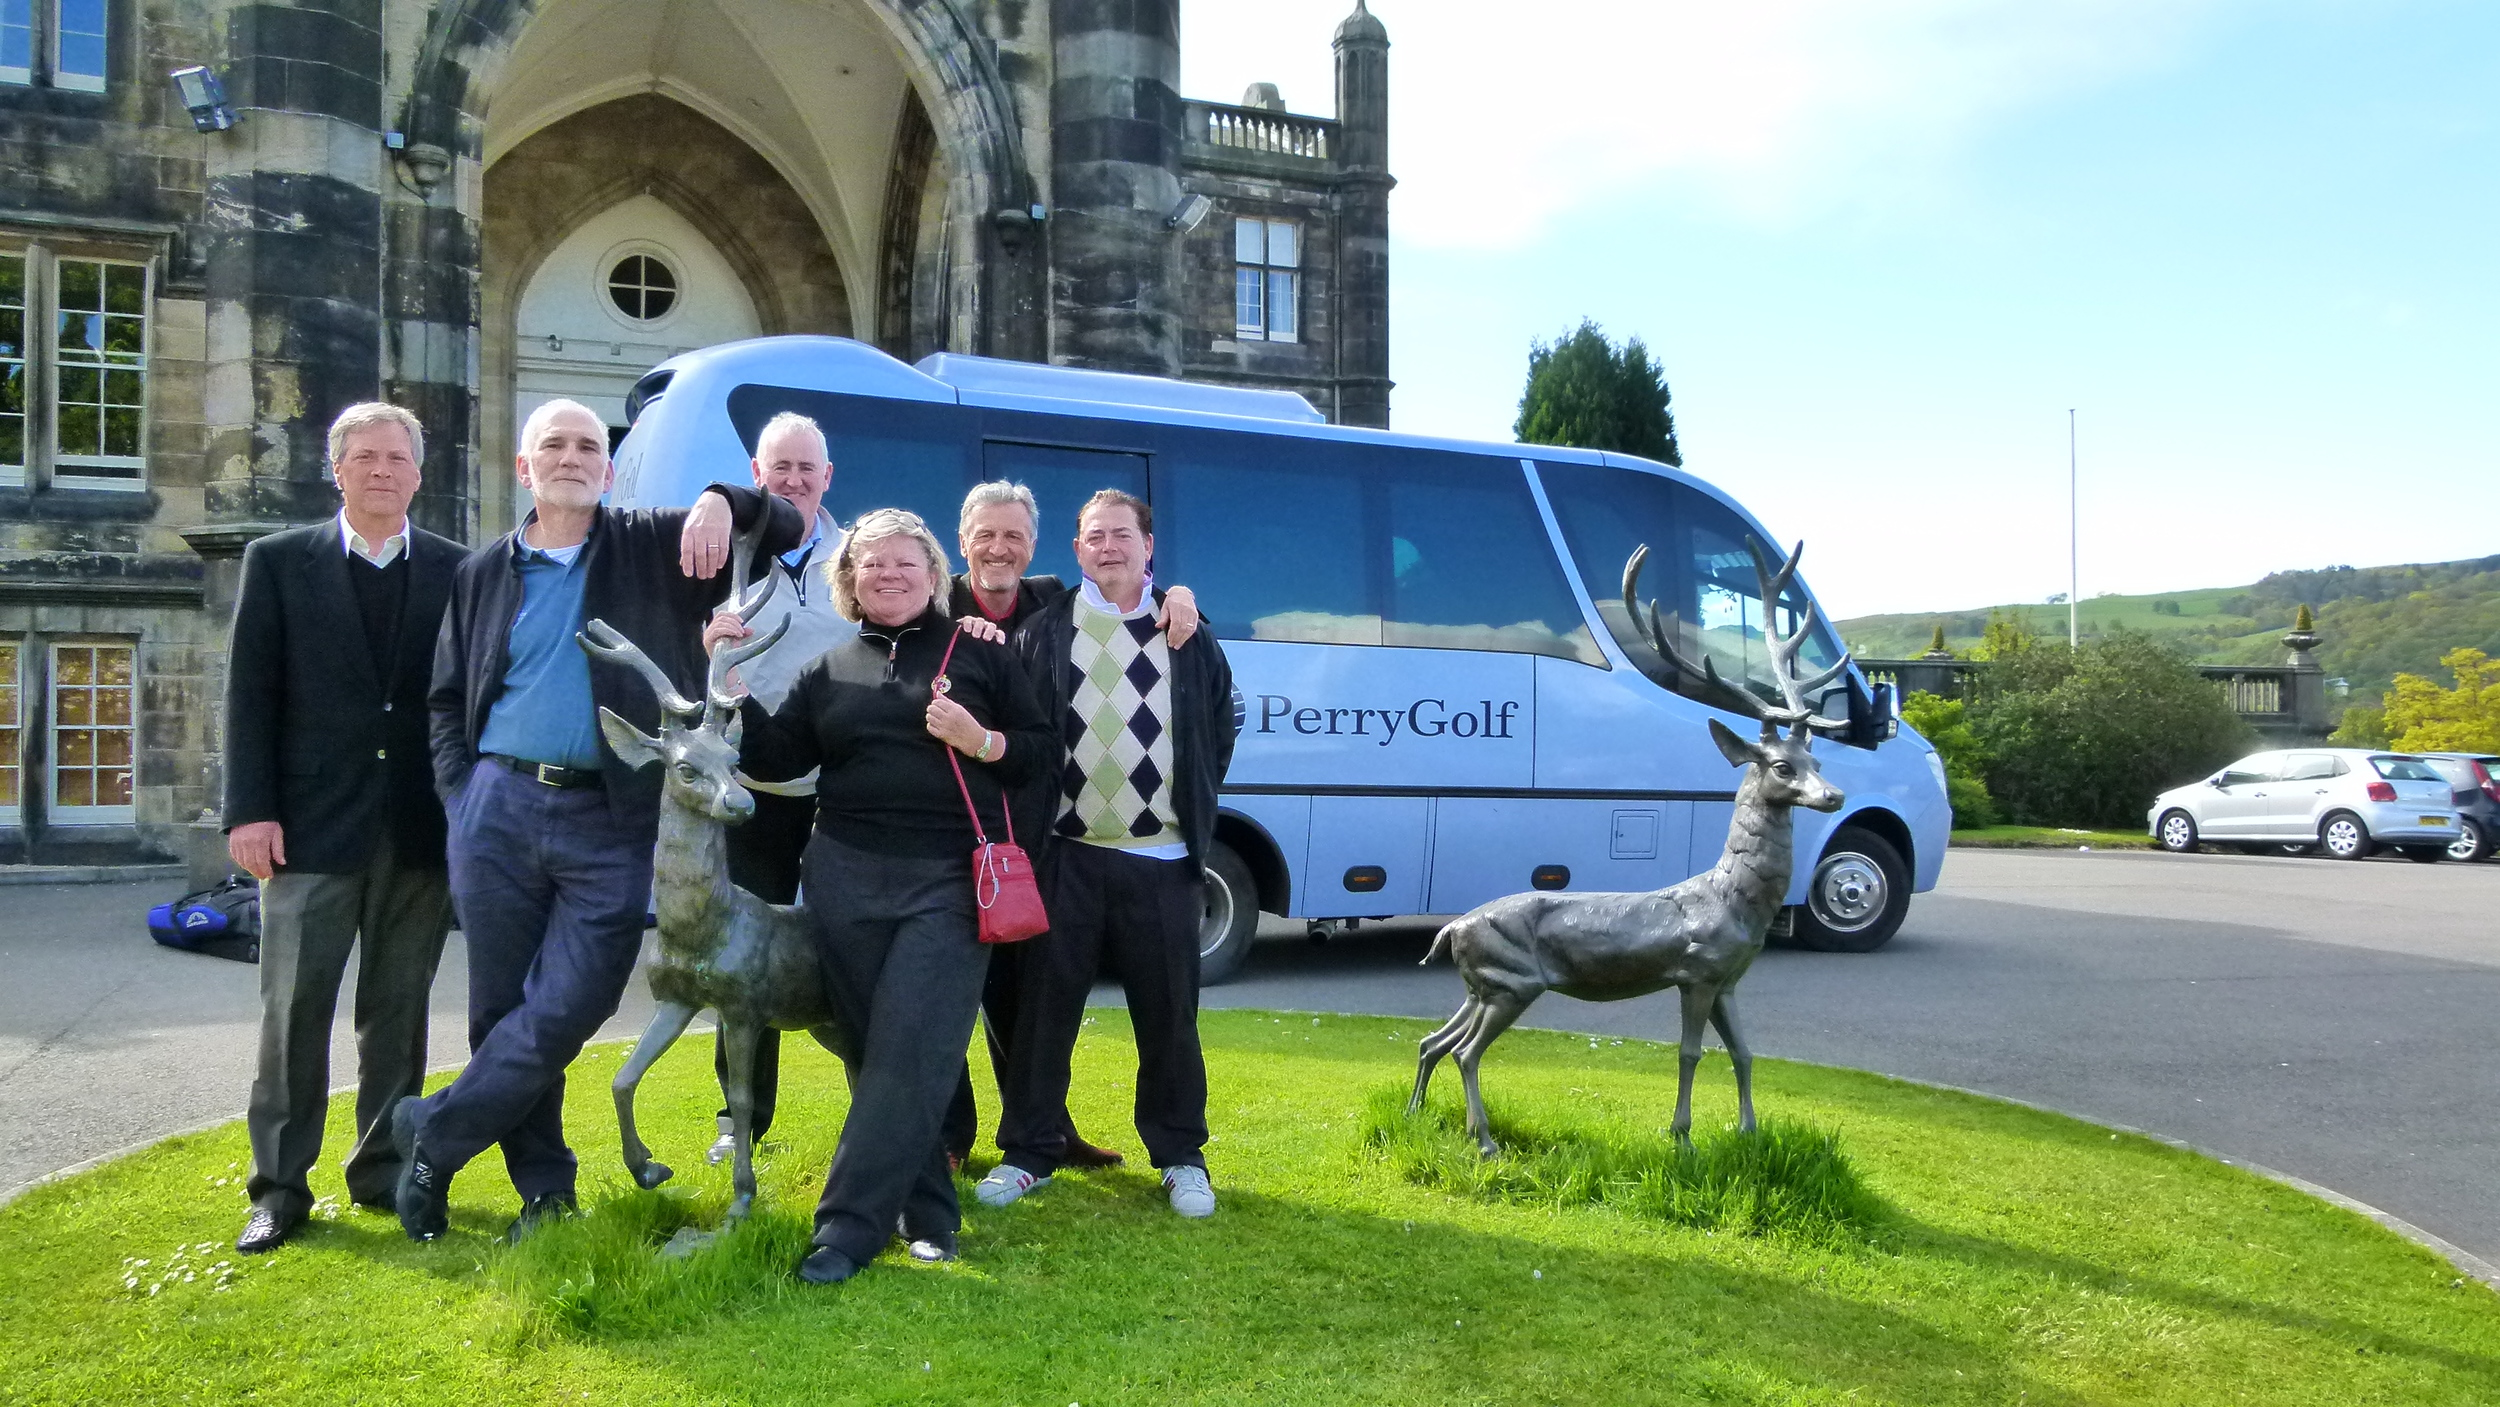 US & UK journalists visit Mar Hall as part of the Golf Road Warriors roadshow...